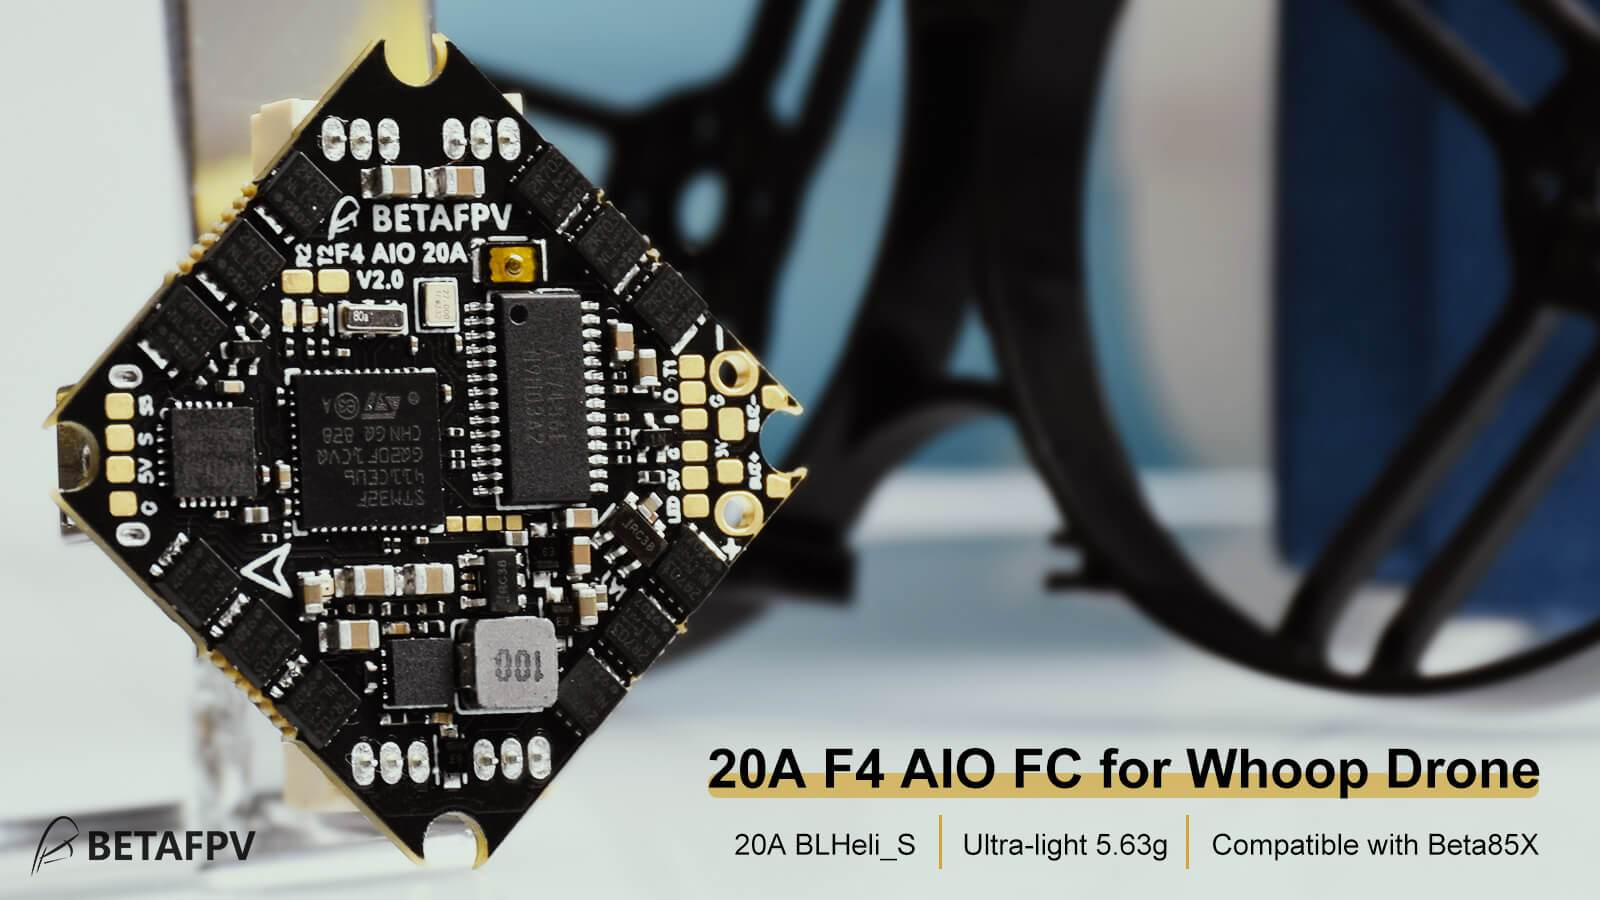 20A F4 AIO FC for Whoop Drone